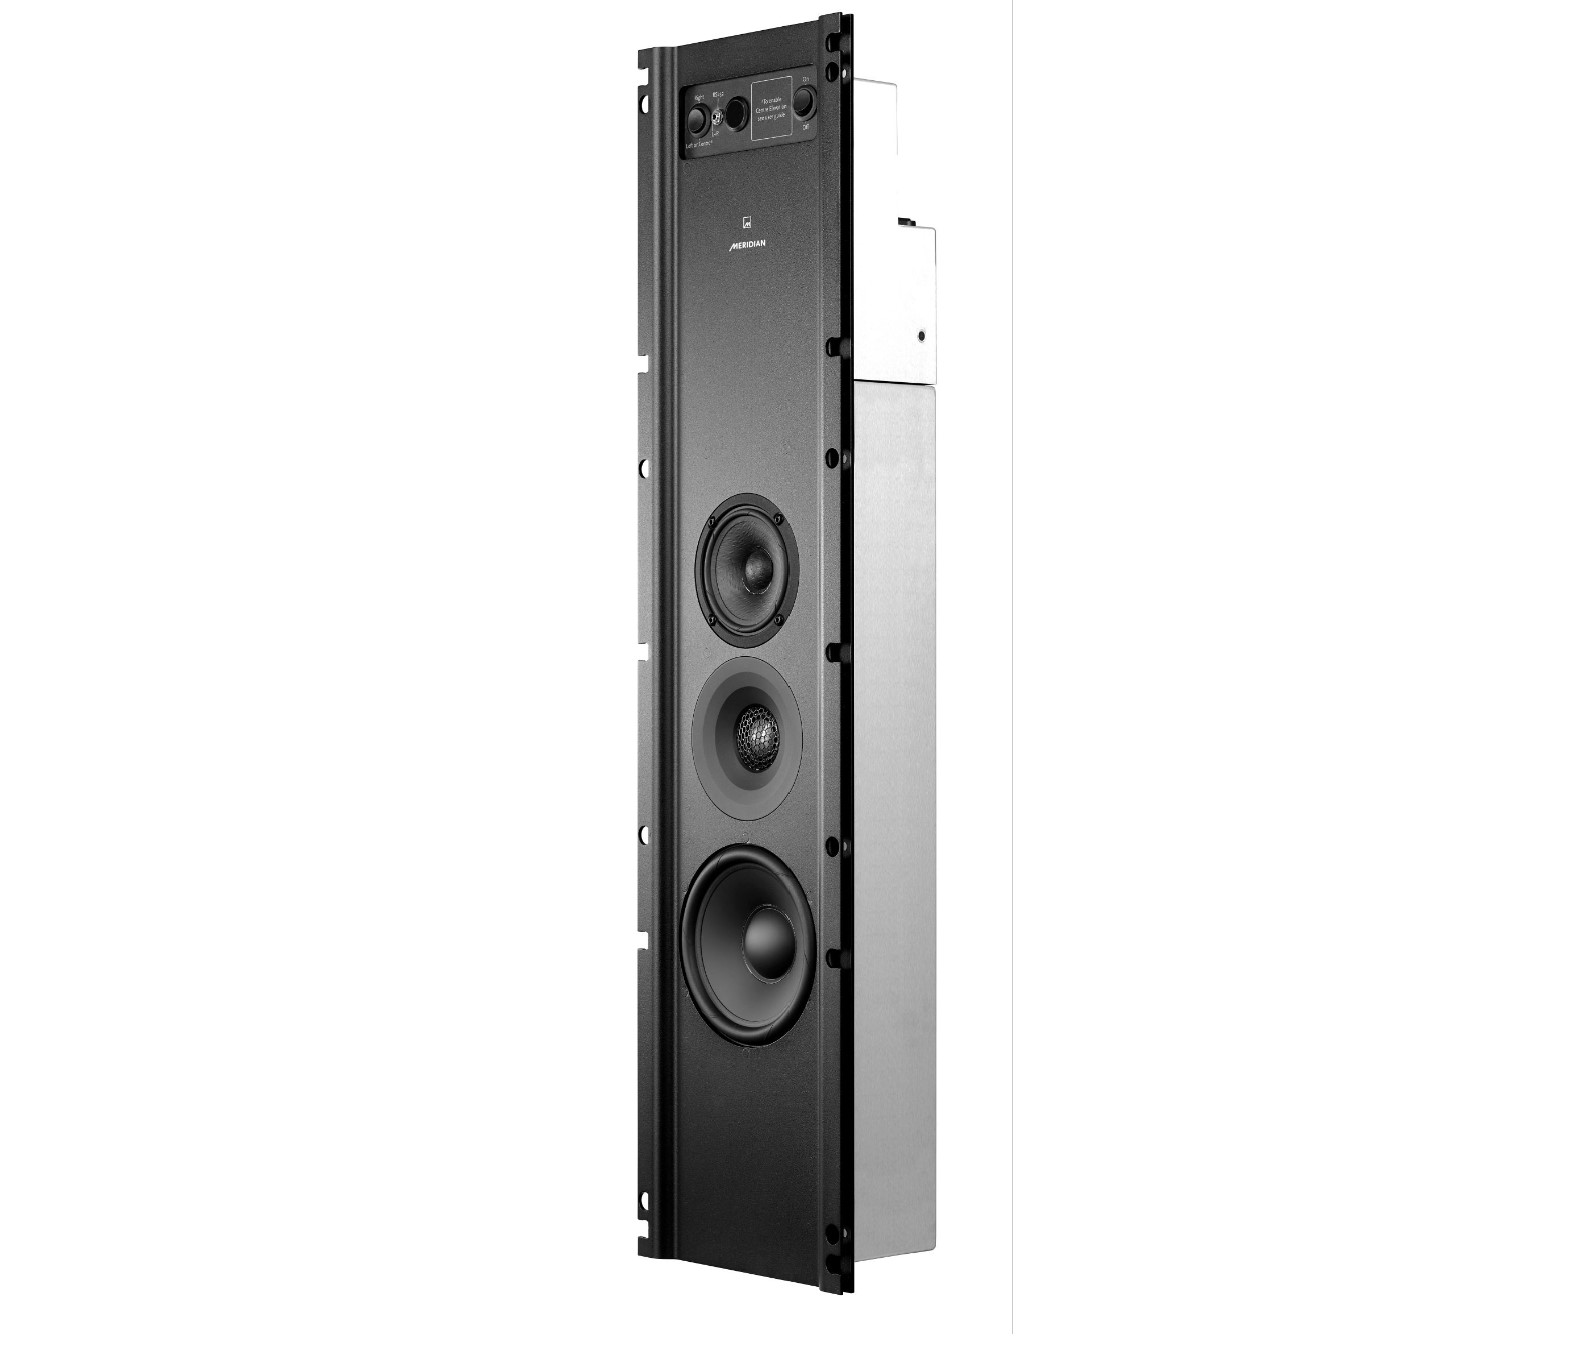 Meridian Audio Brings Power And Fidelity With DSP730 Active Speaker